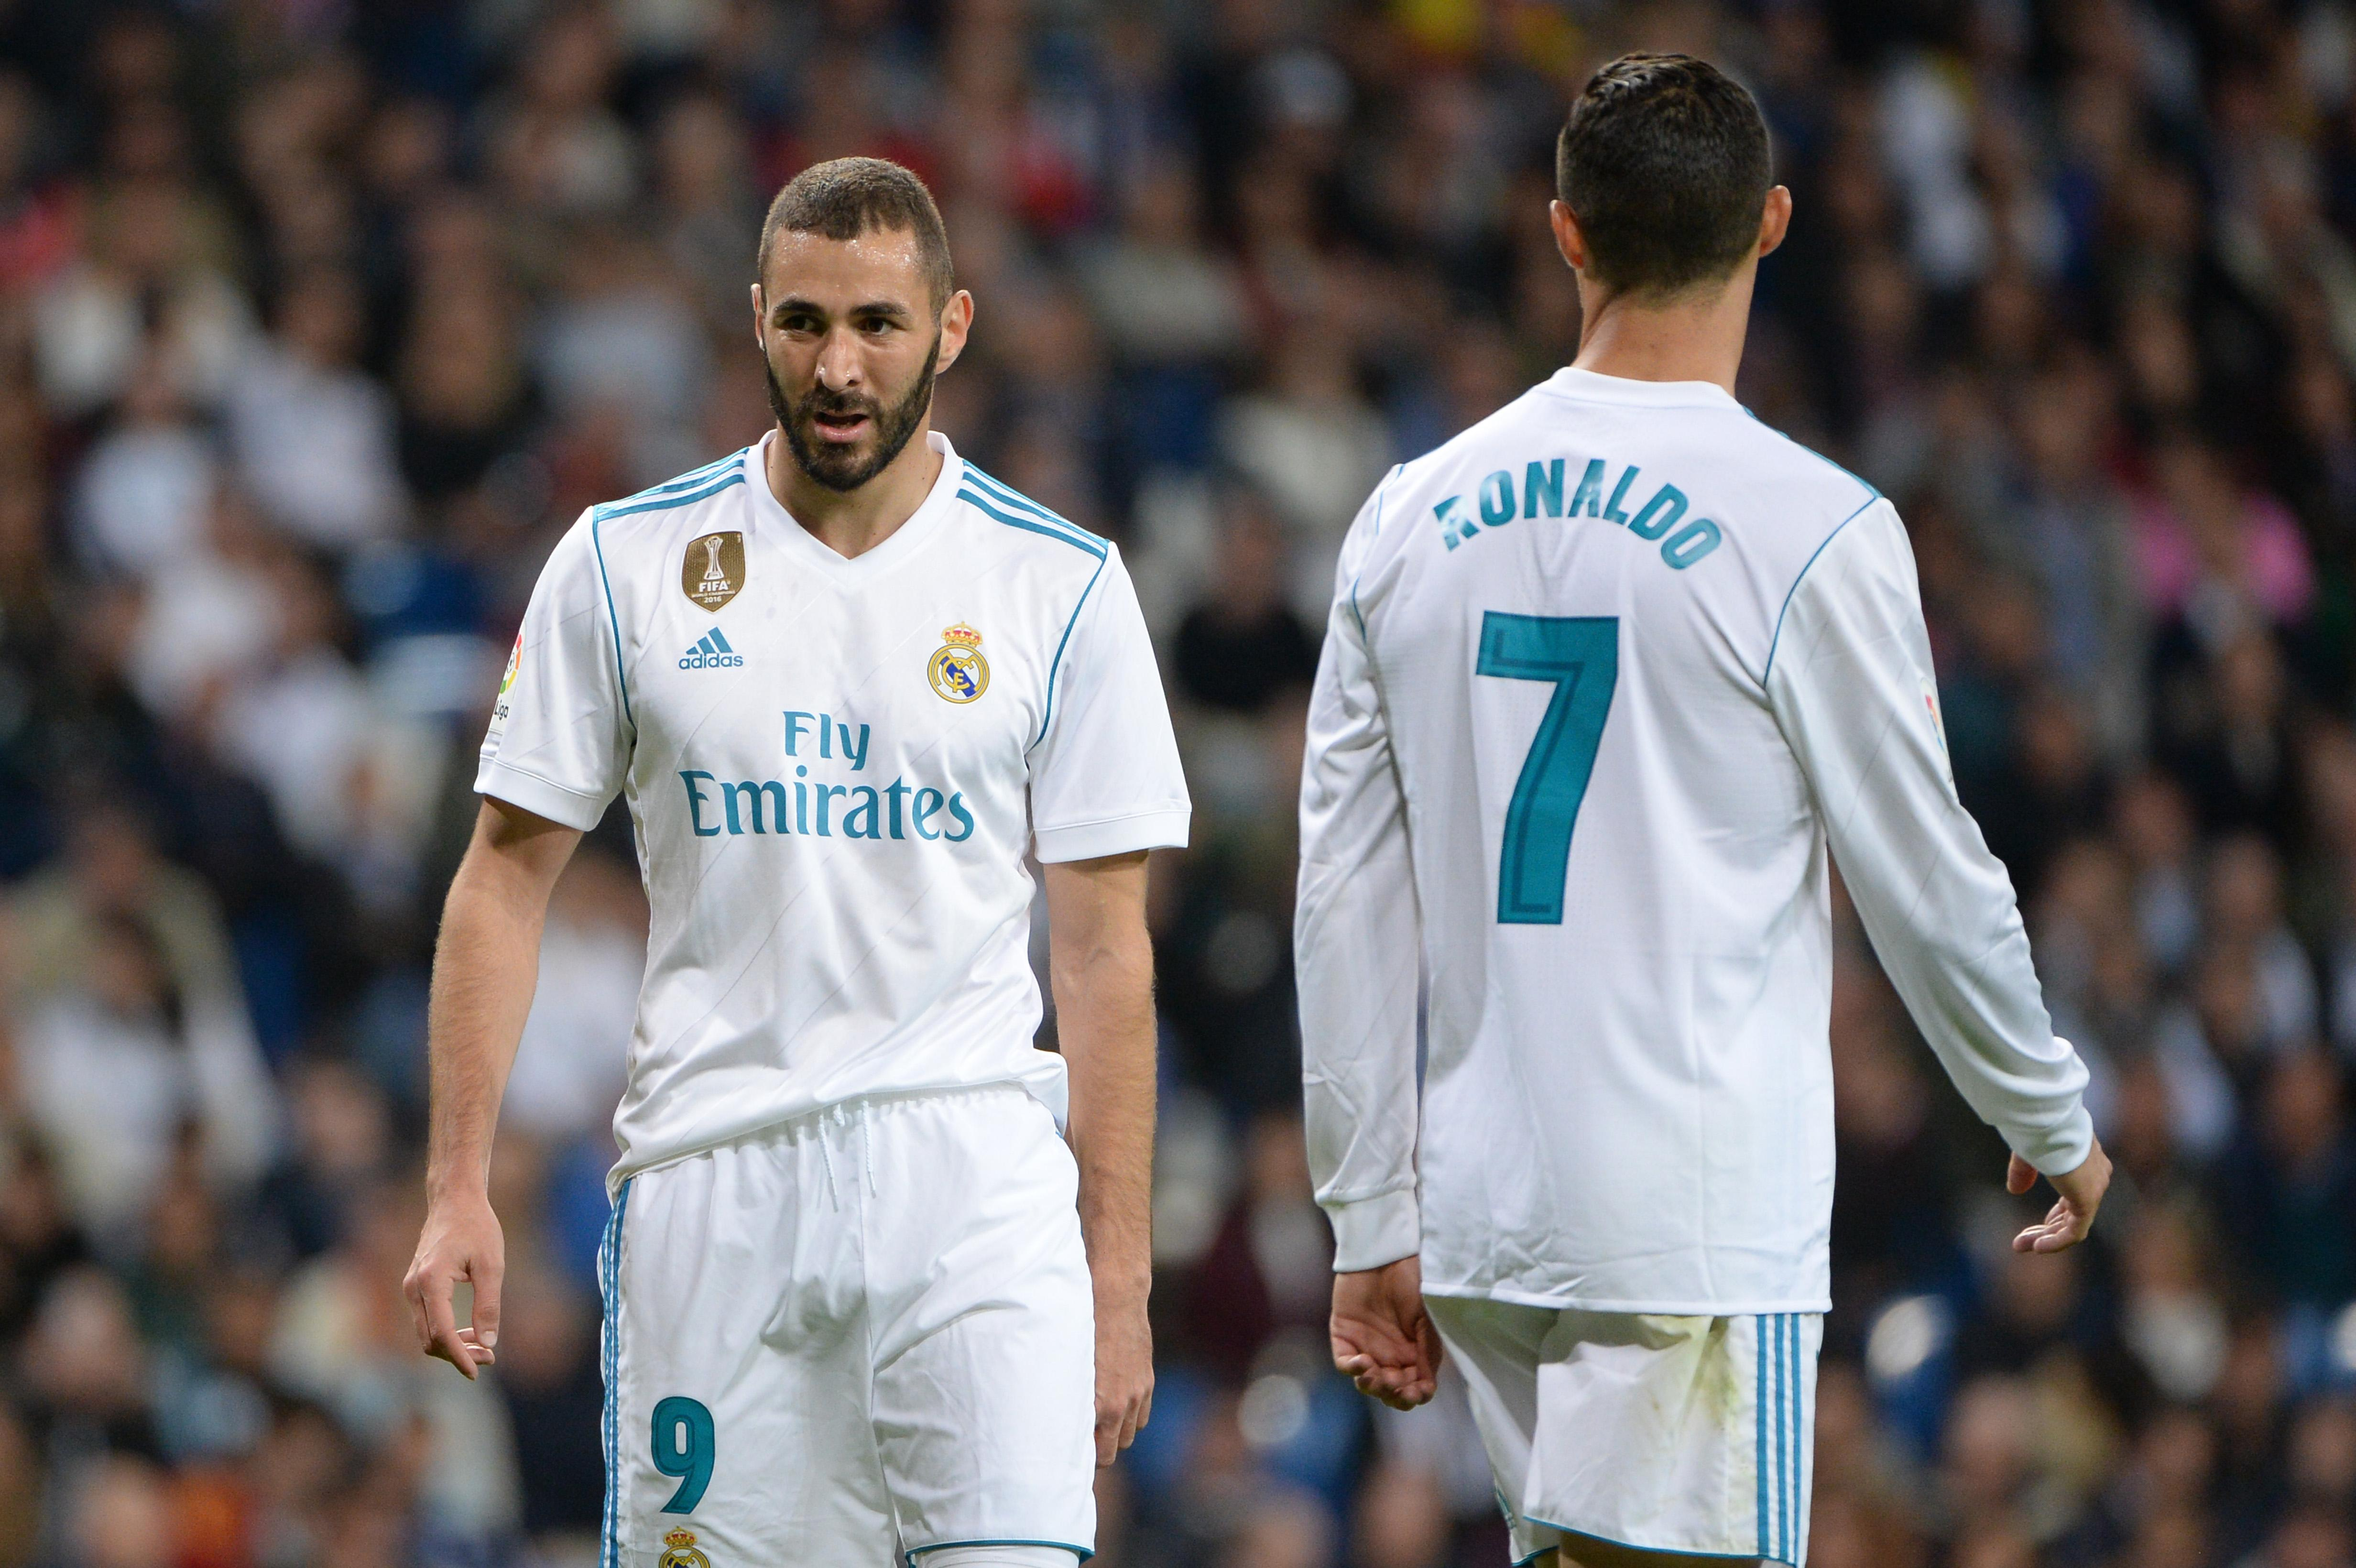 Karim Benzema and Cristiano Ronaldo could leave Real Madrid in summer